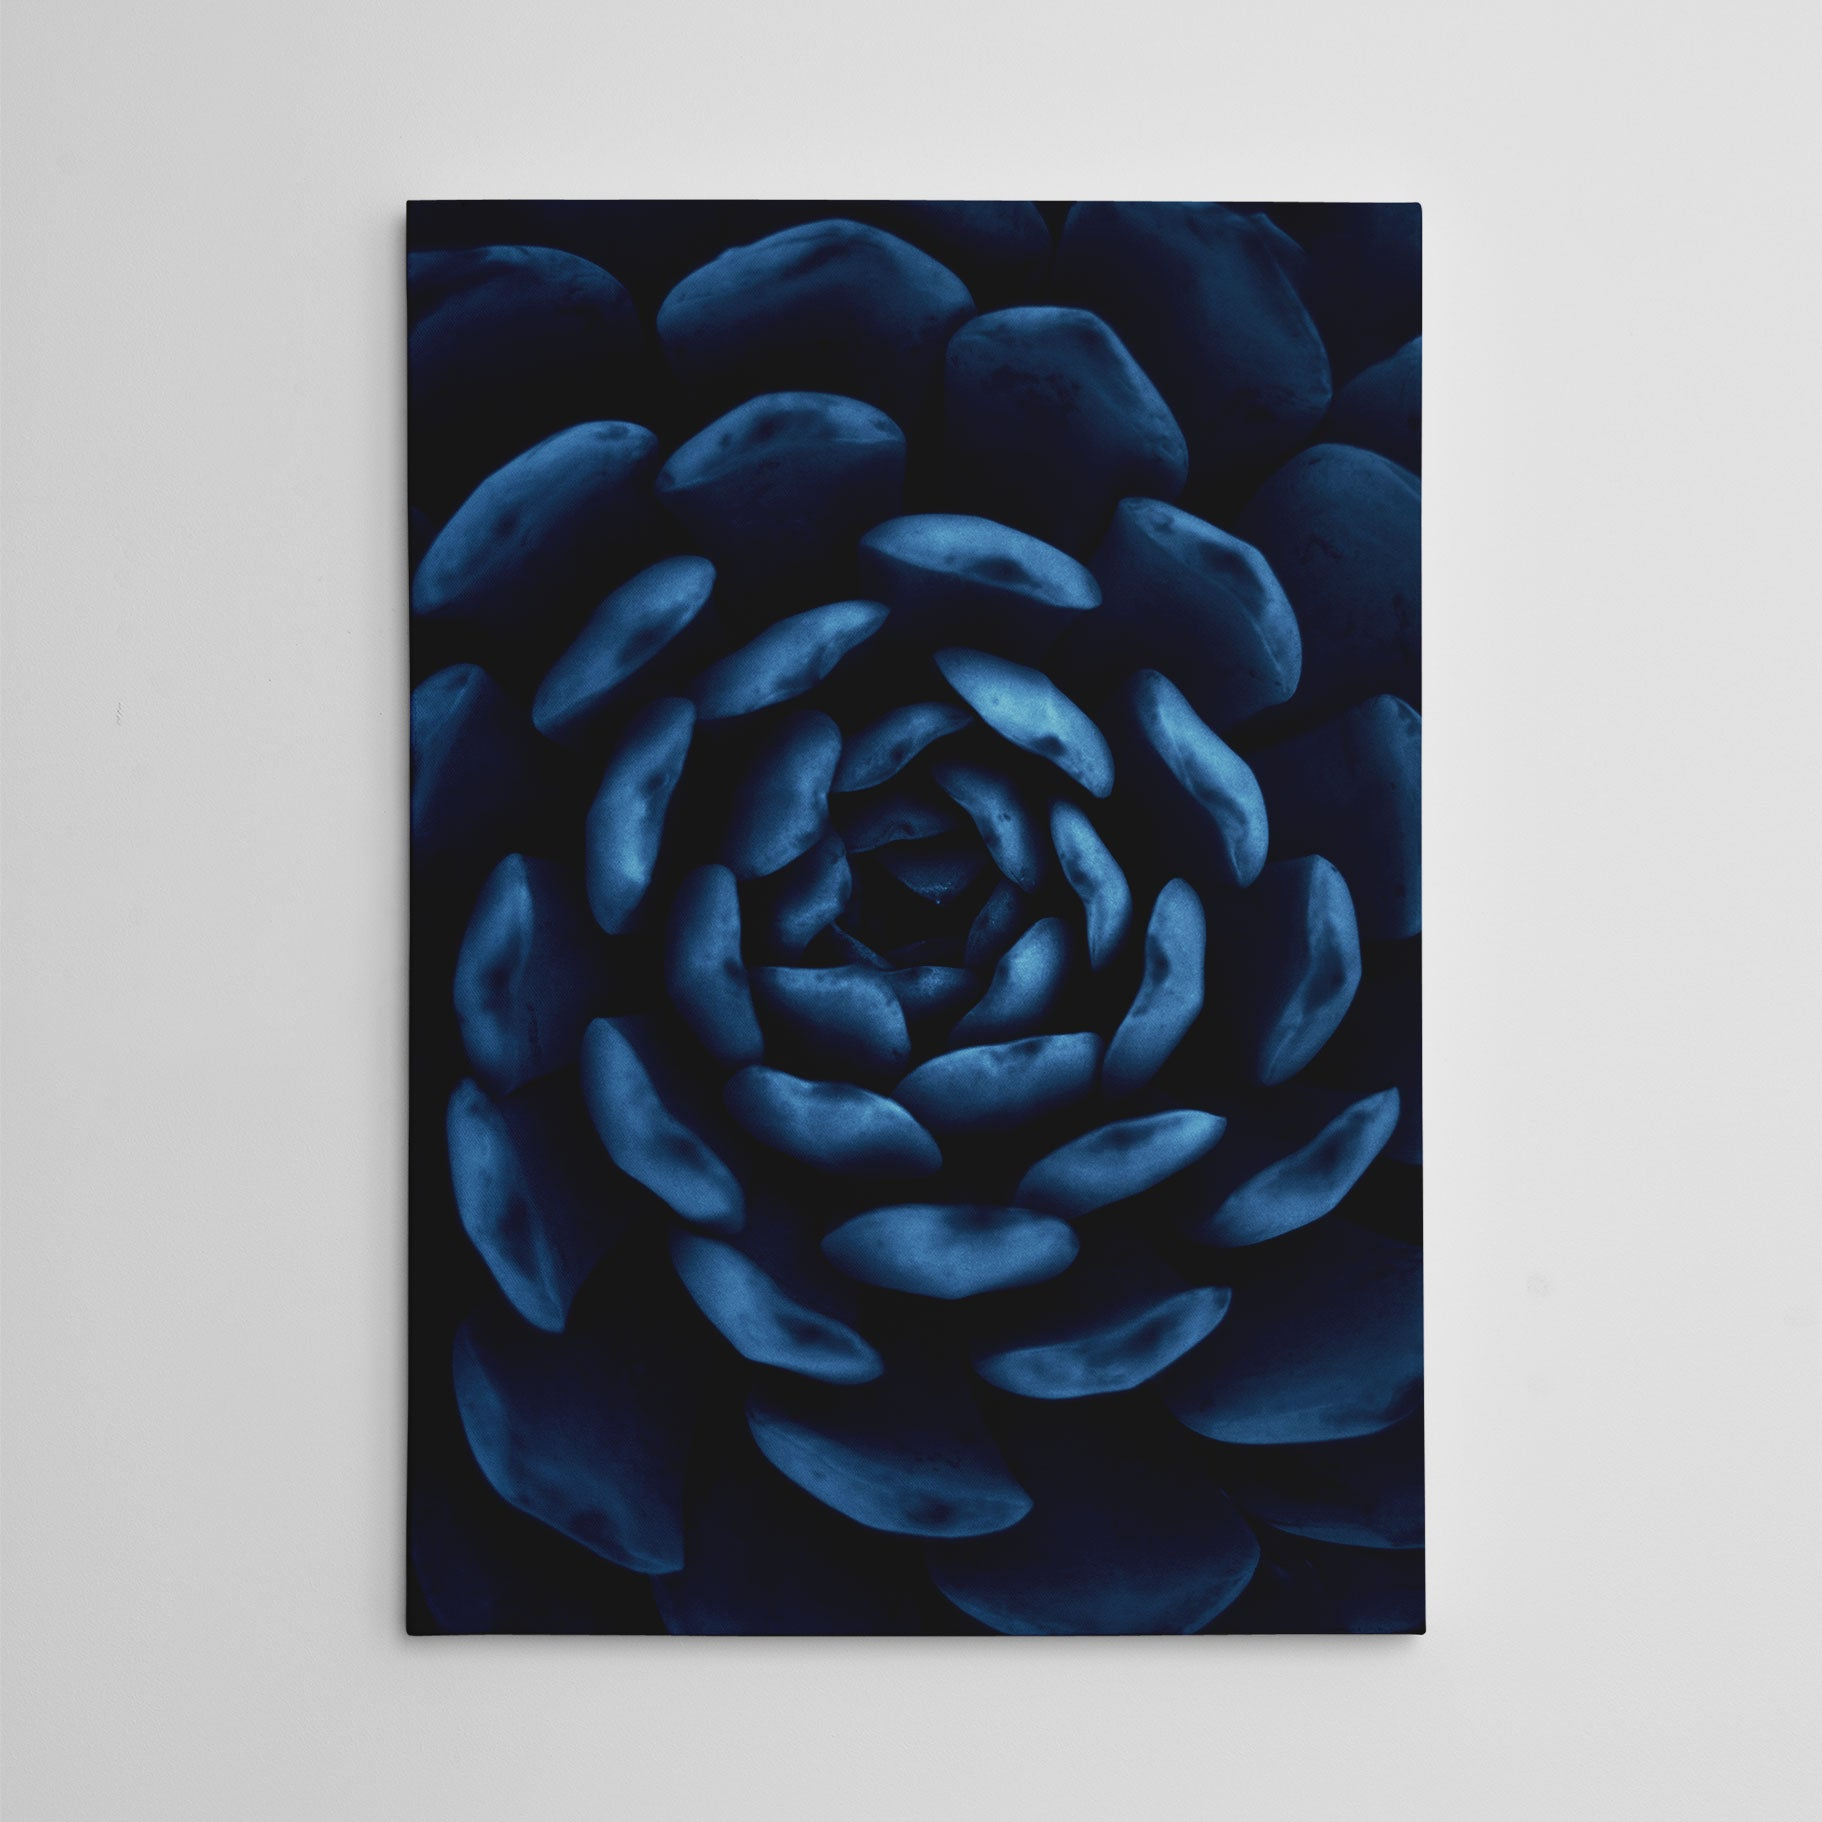 Botanical photography canvas print, with a blue succulent plant close-up.